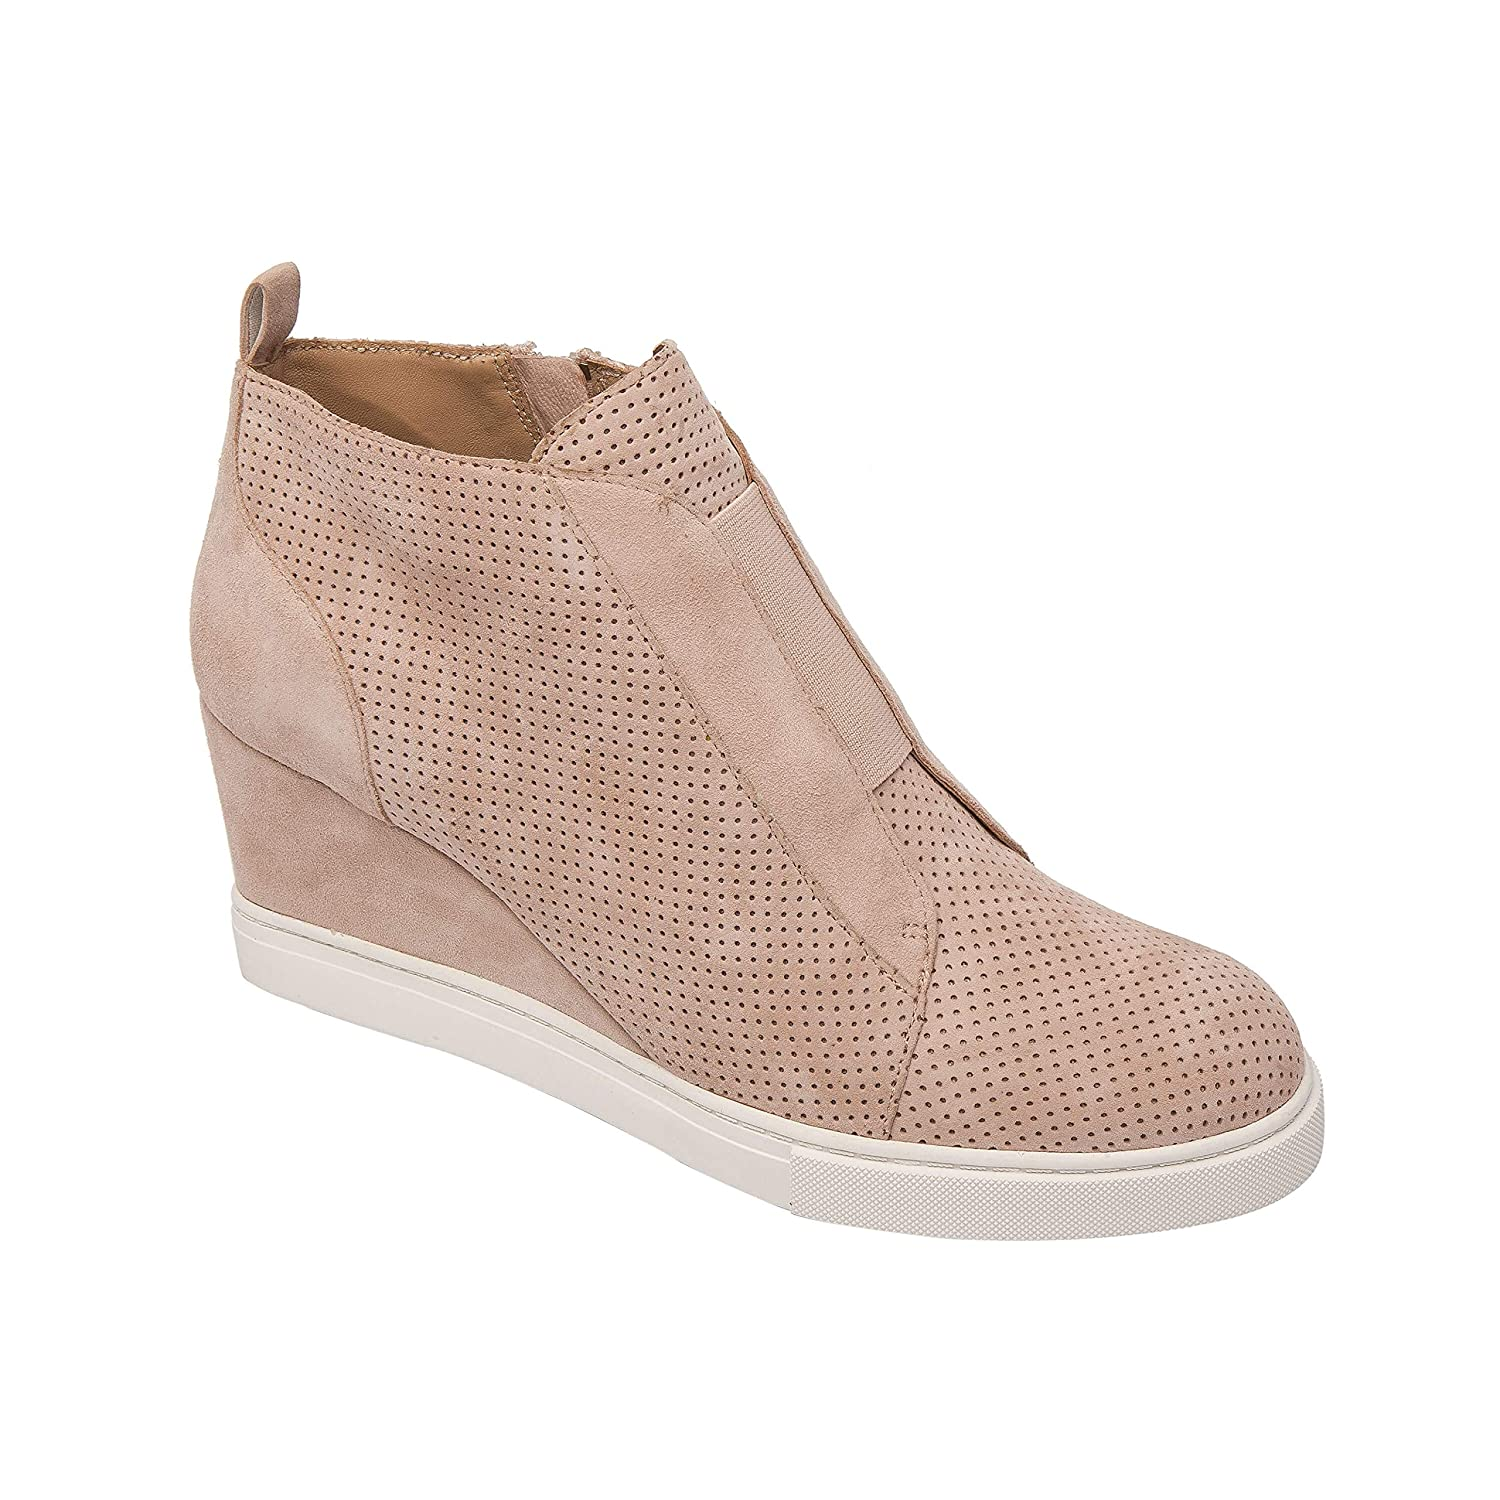 9efdf2bb09 Amazon.com | Linea Paolo Felicia | Platform Wedge Bootie Sneaker Blush  Perforated Suede 4.5M | Fashion Sneakers